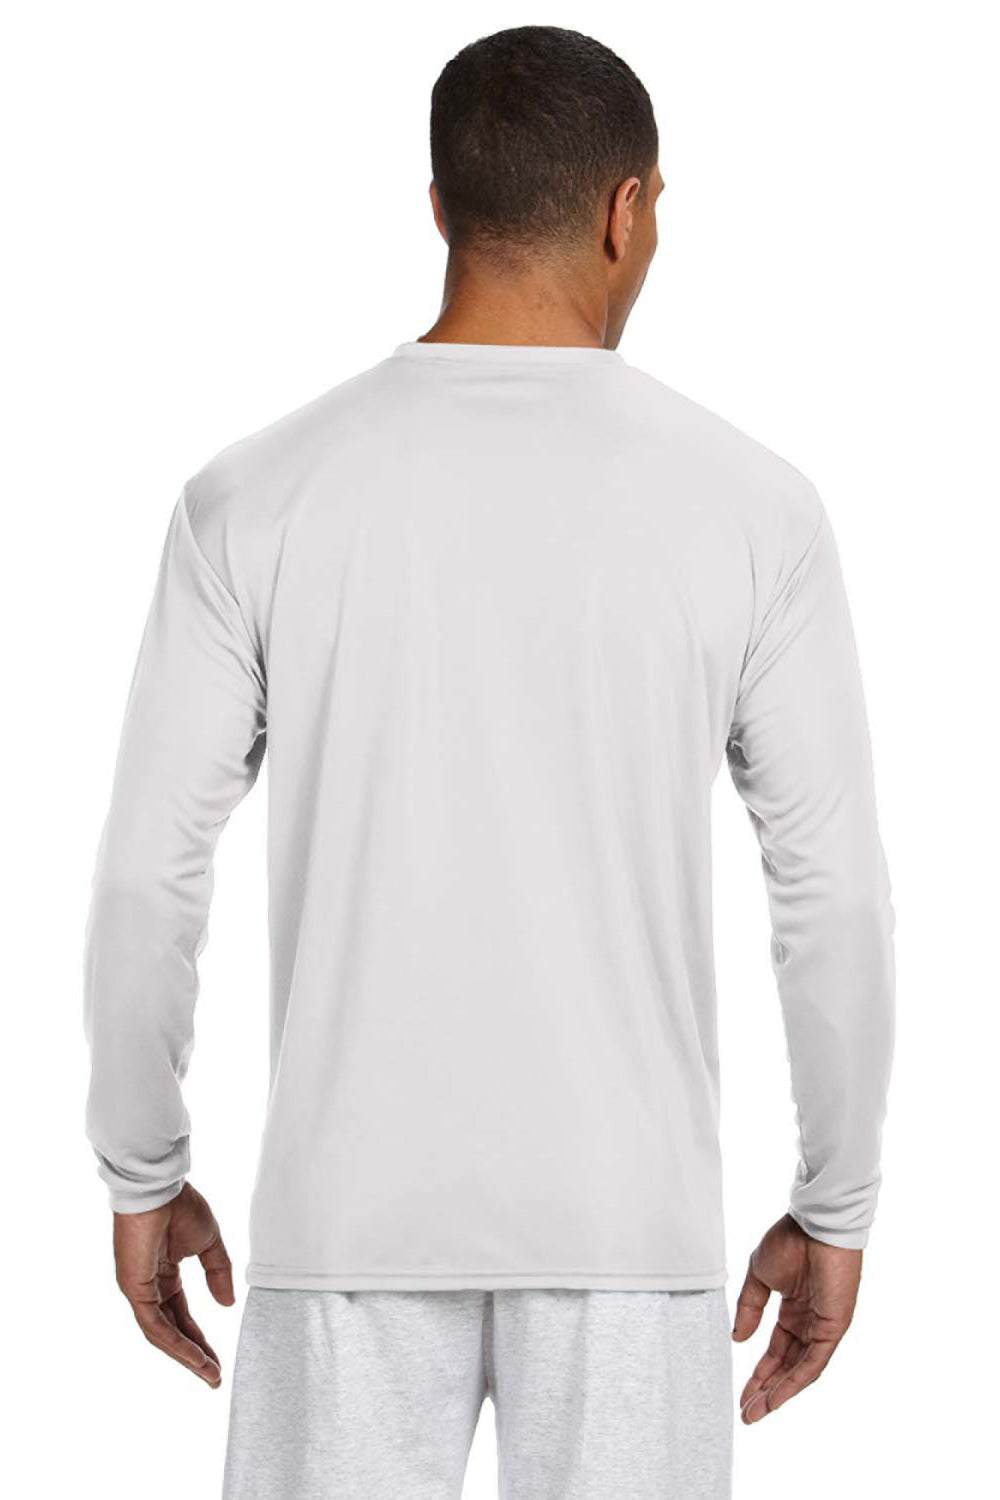 A4 N3165 Mens Cooling Performance Moisture Wicking Long Sleeve Crewneck T-Shirt White Back